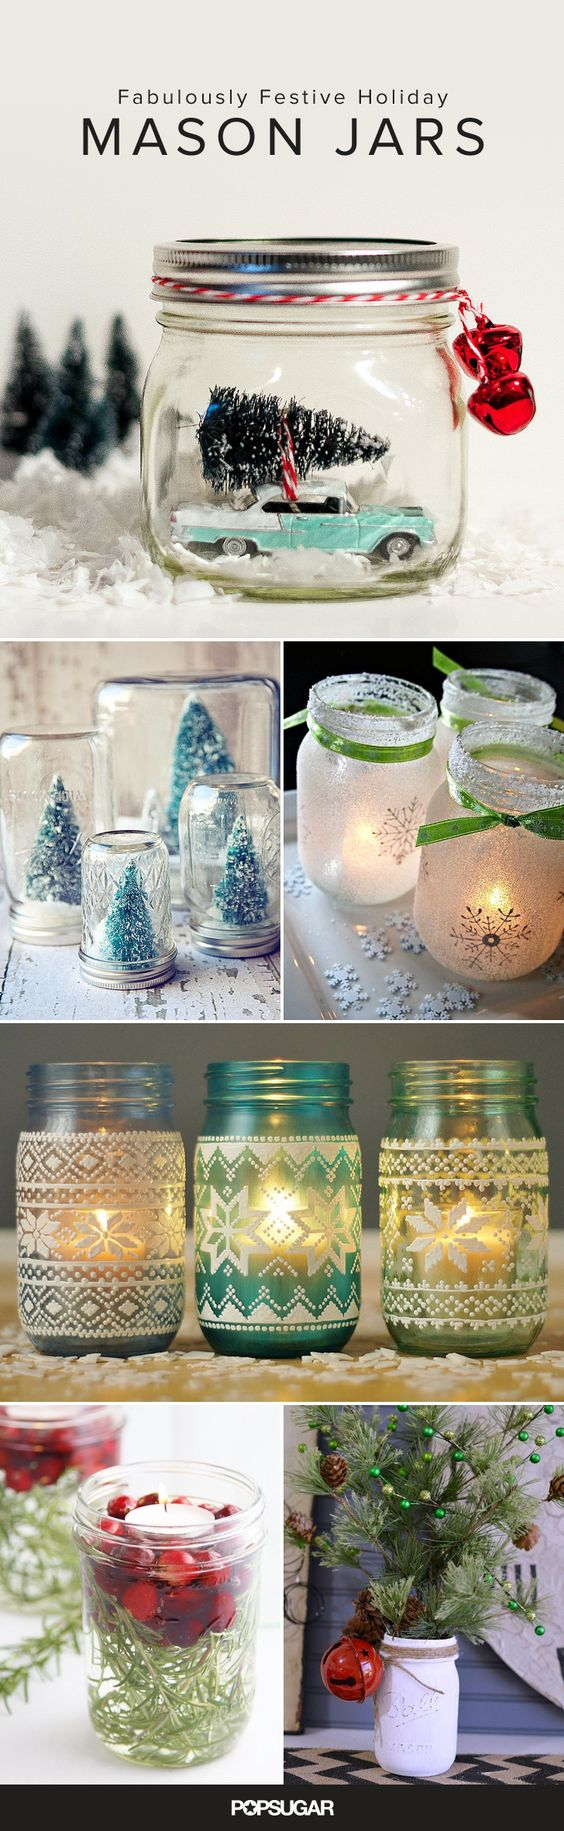 14 creative ways to decorate with mason jars for the